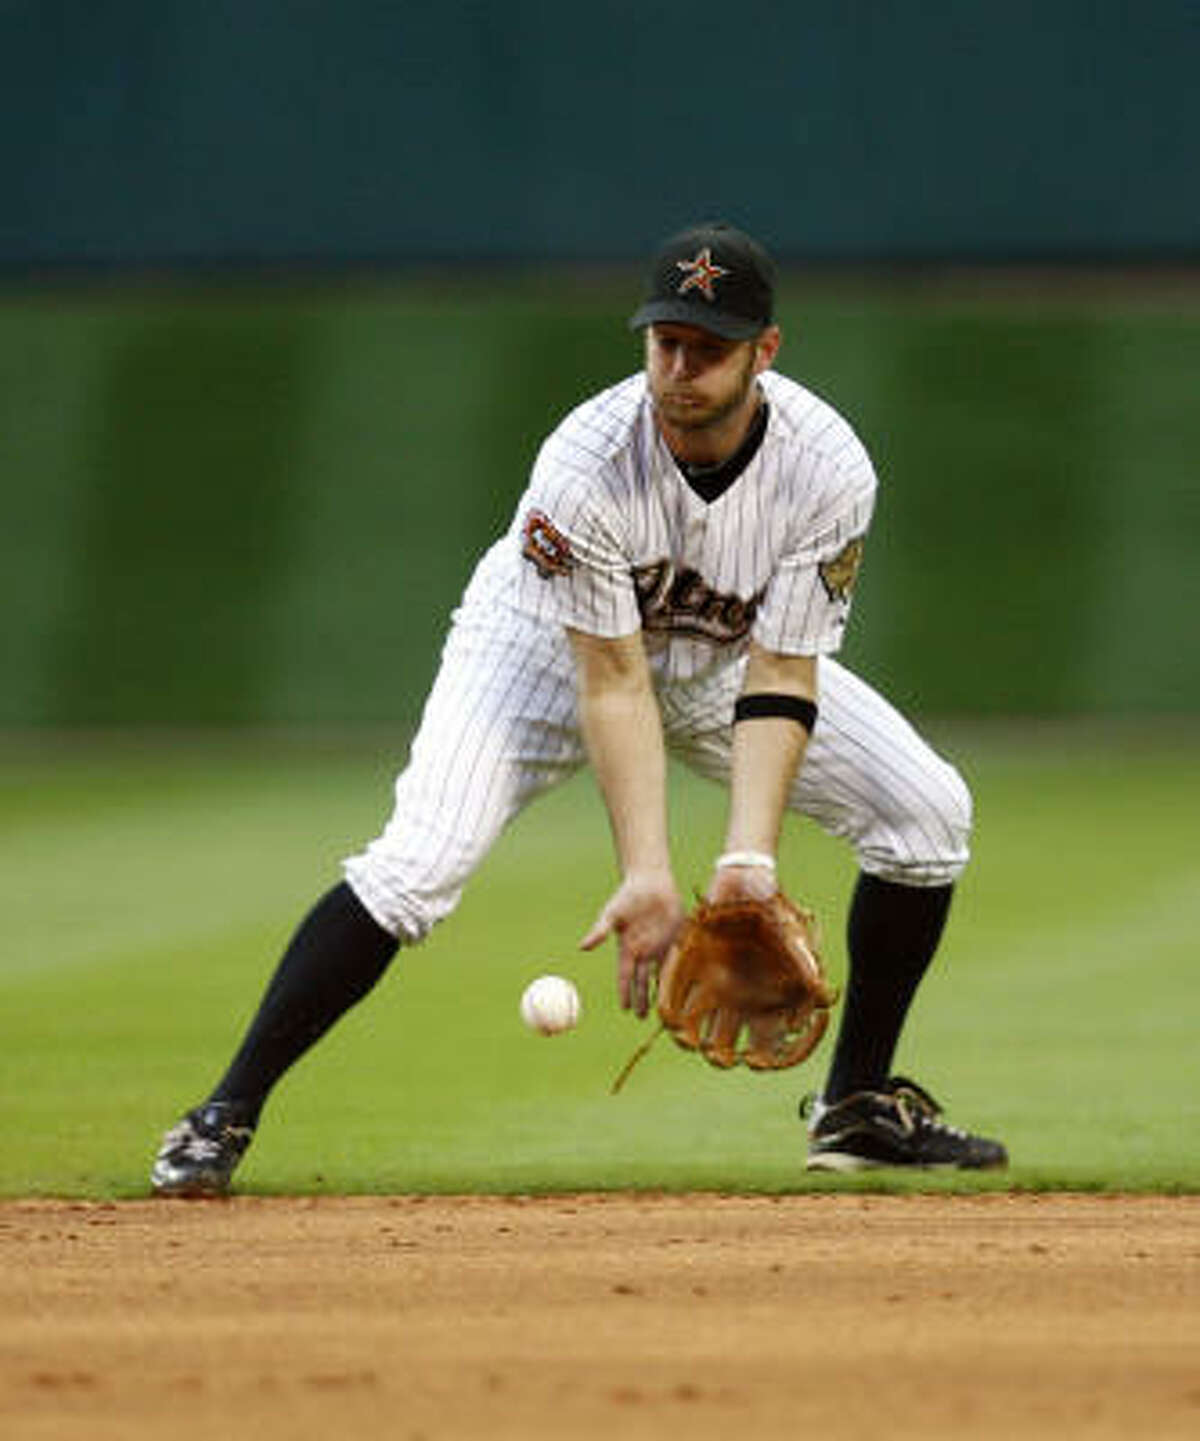 Jeff Keppinger entered the season battling for playing time because Kaz Matsui was the starting second baseman.